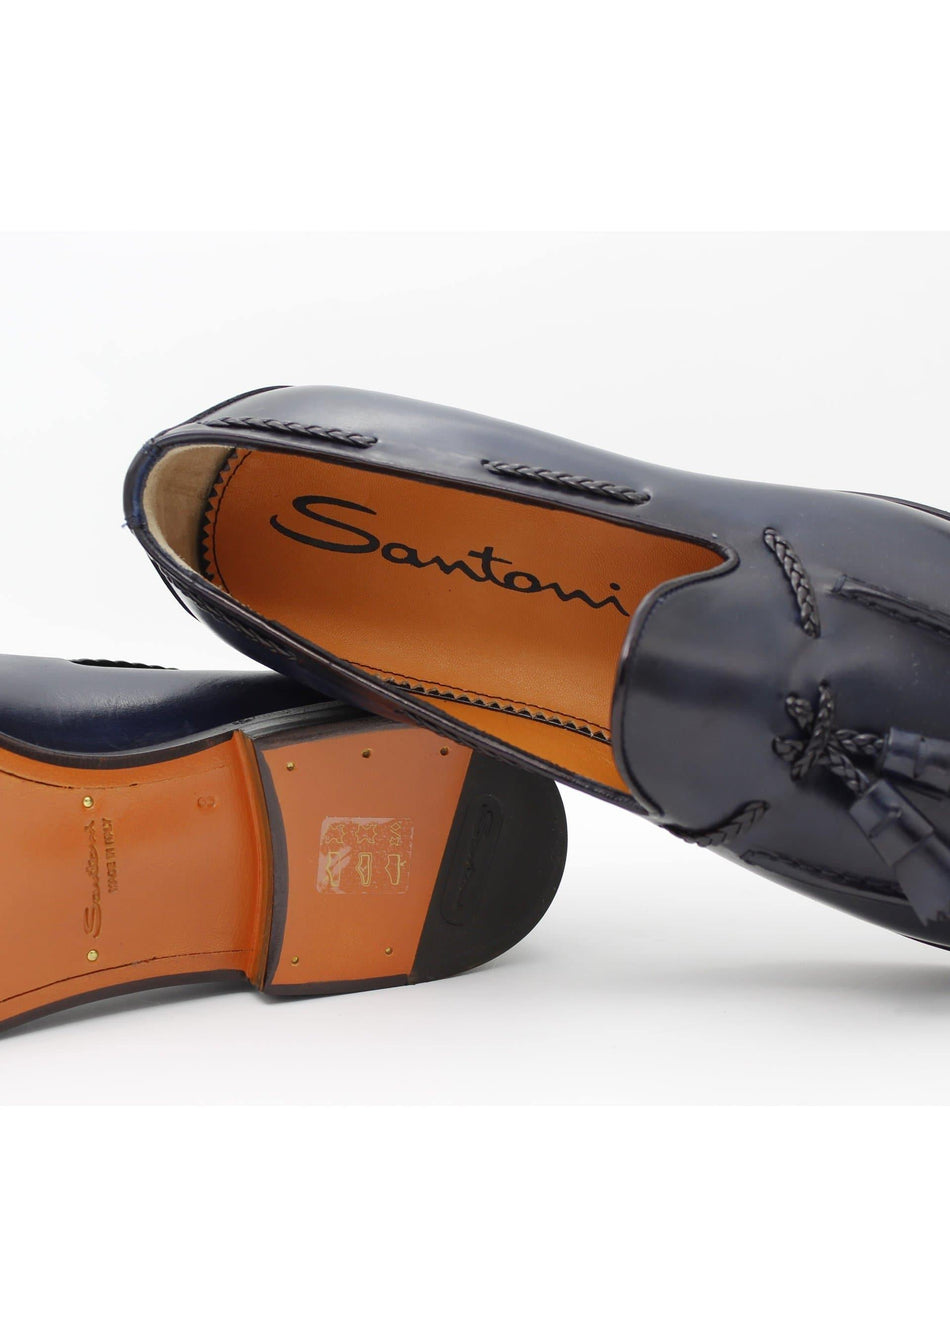 mocassino in pelle SANTONI - Vittorio Citro Boutique